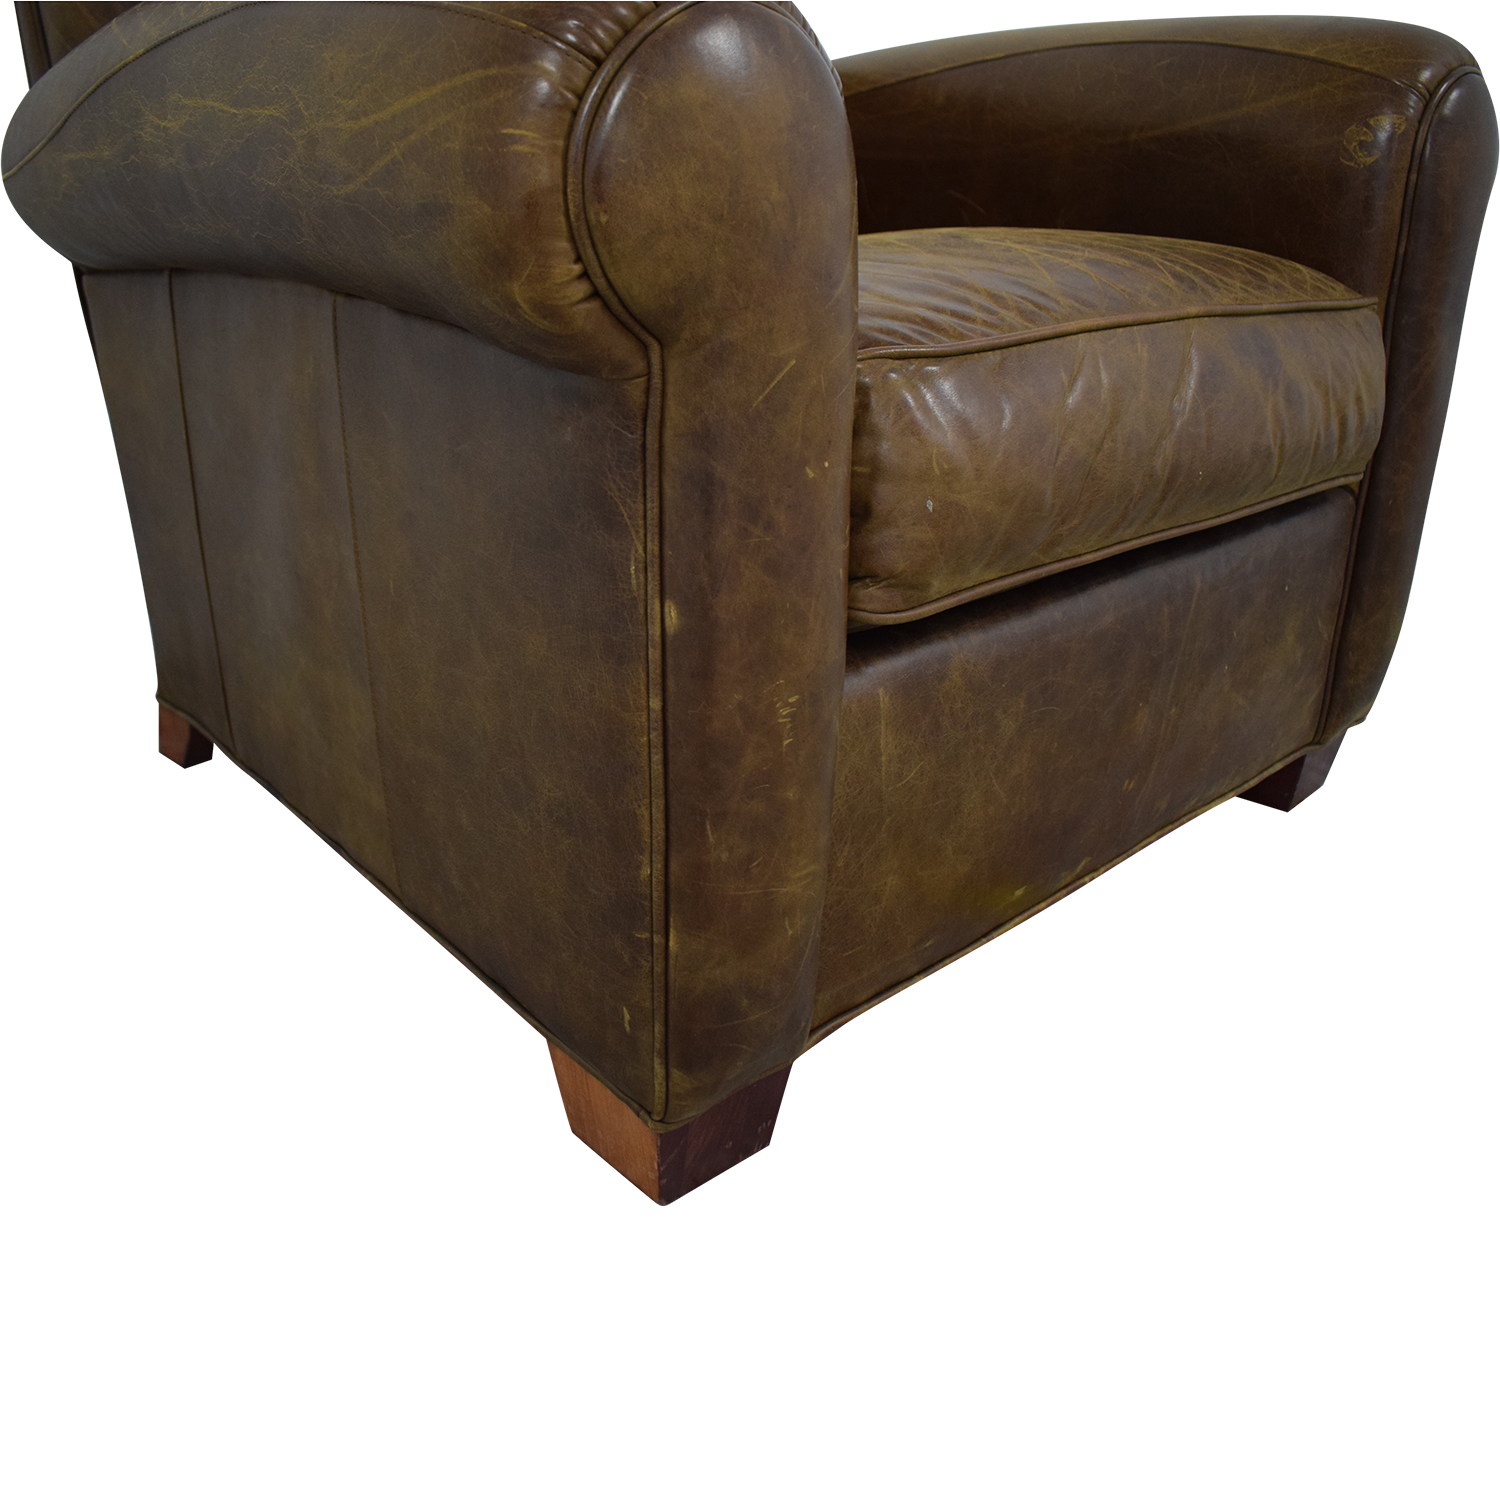 Zagaroli Classics Zagaroli Classics Leather Club Reclining Chair coupon